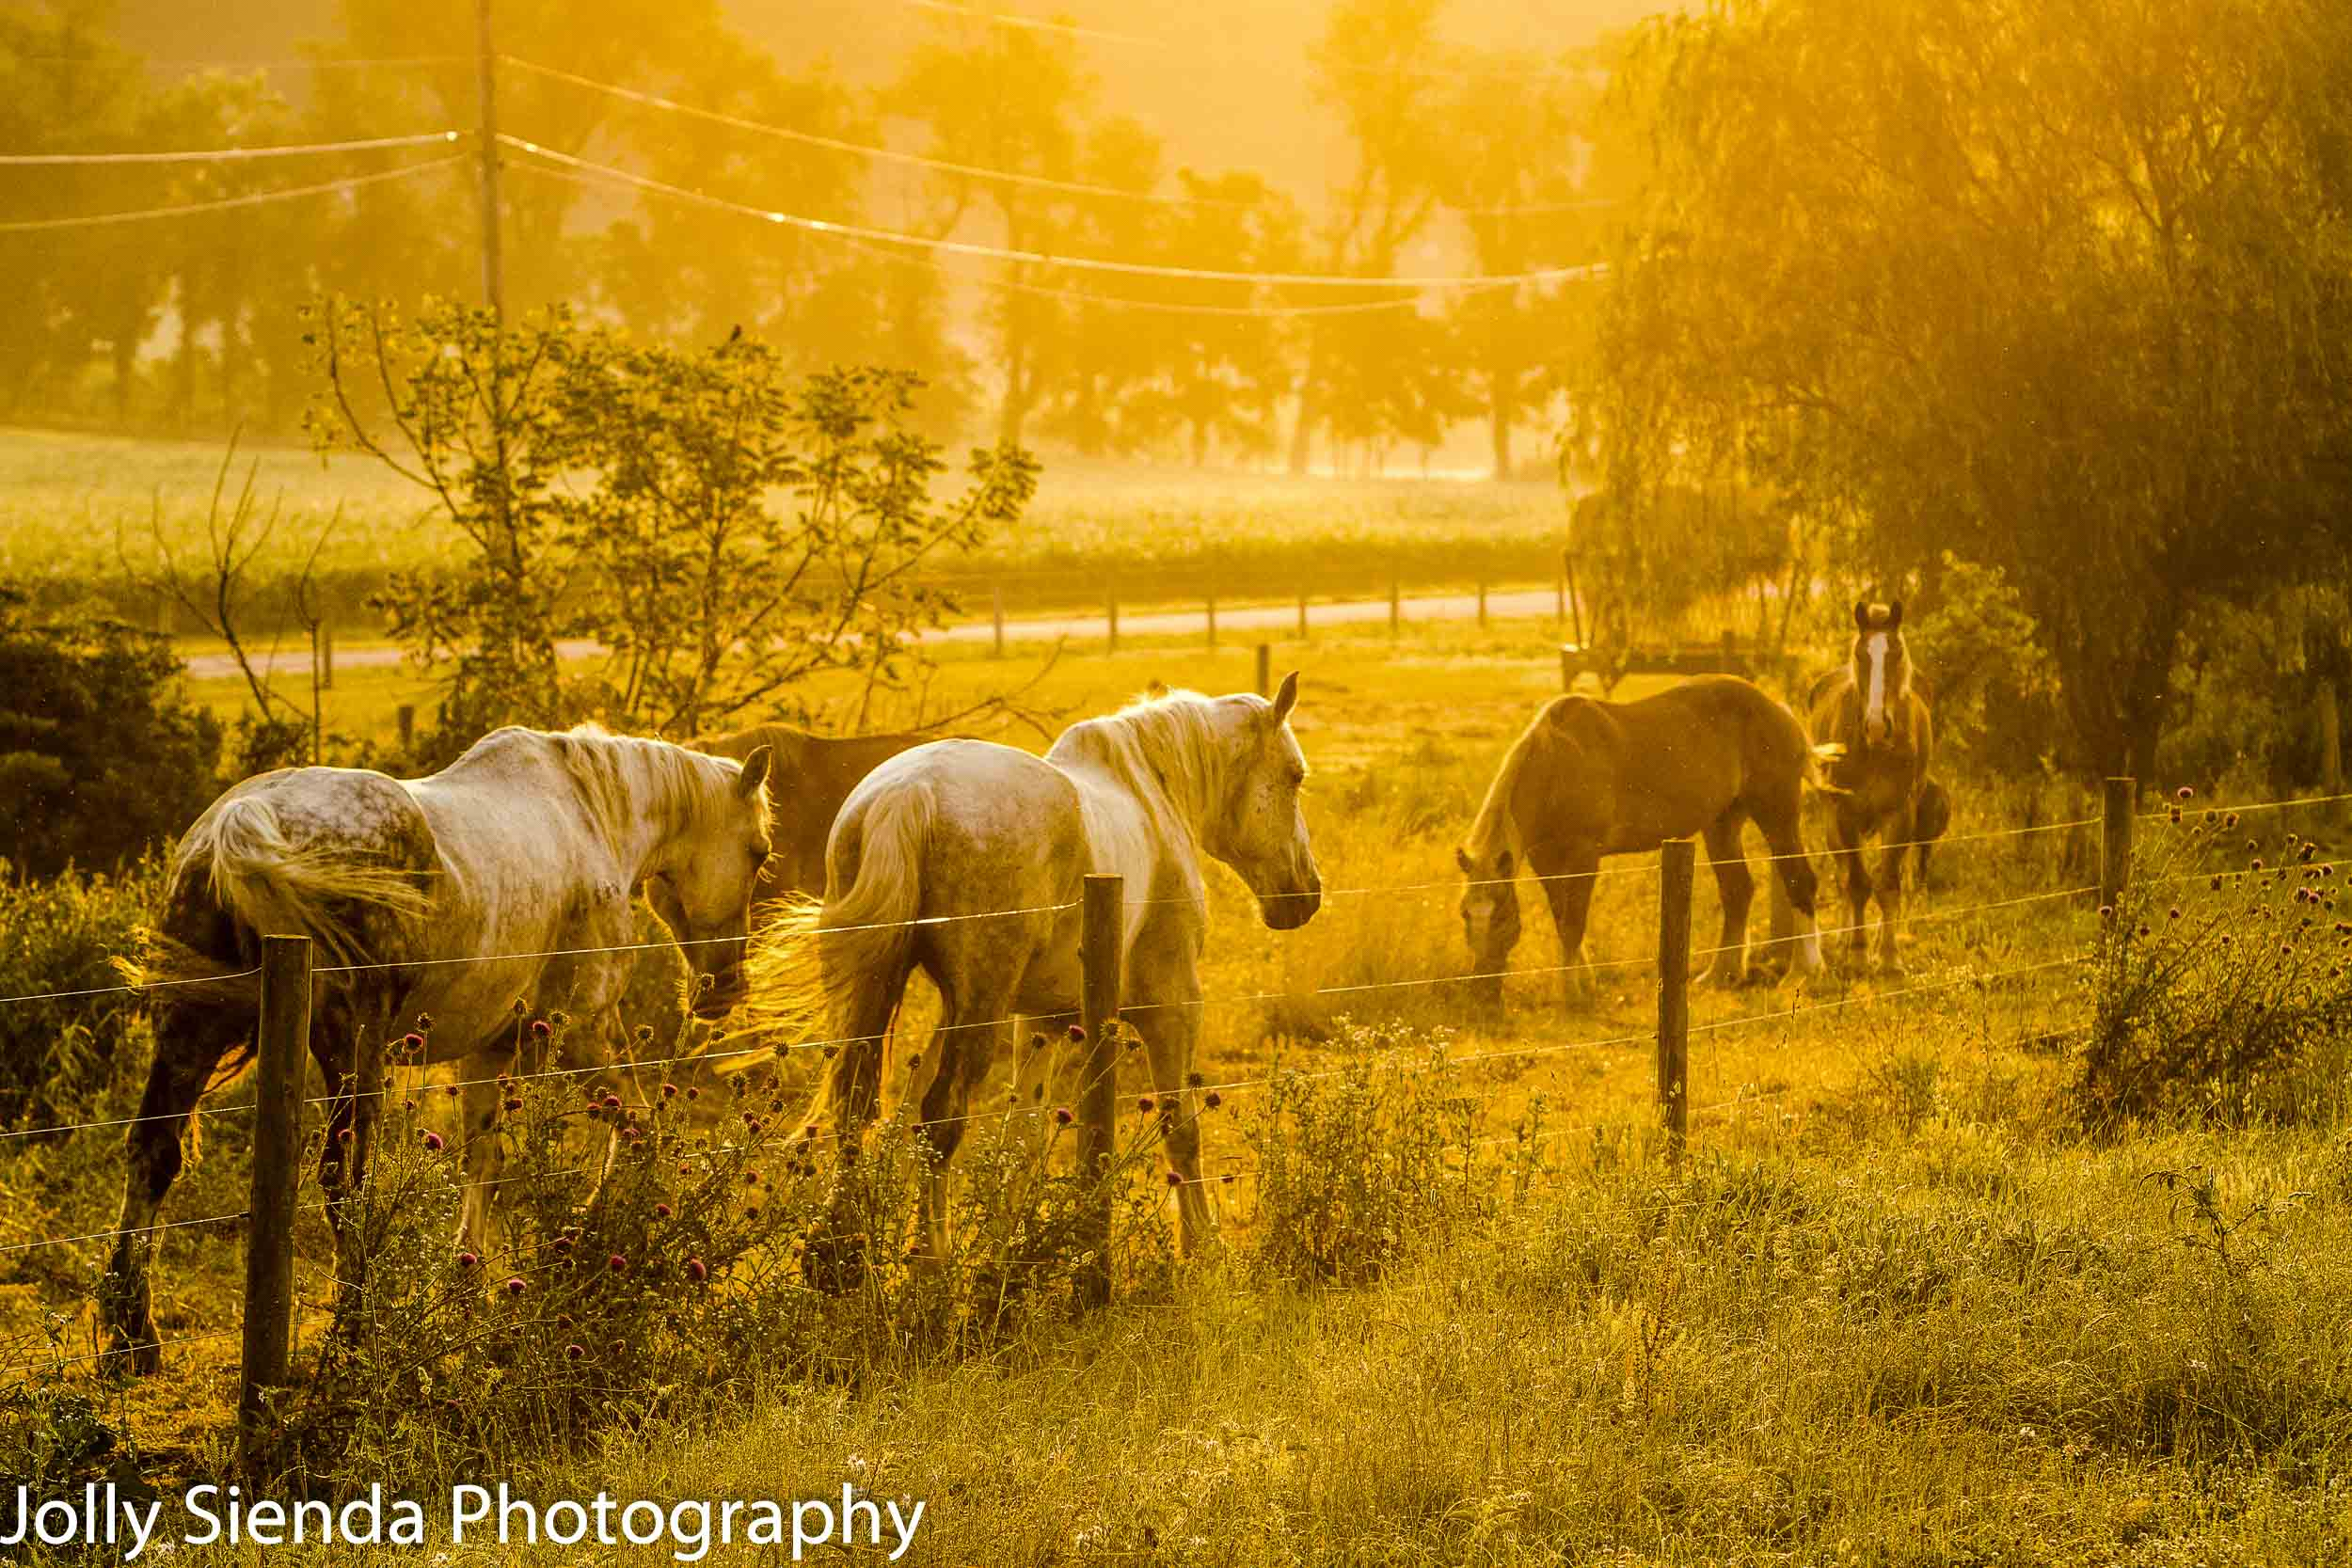 Amish team of horses in the early morning light before the heat